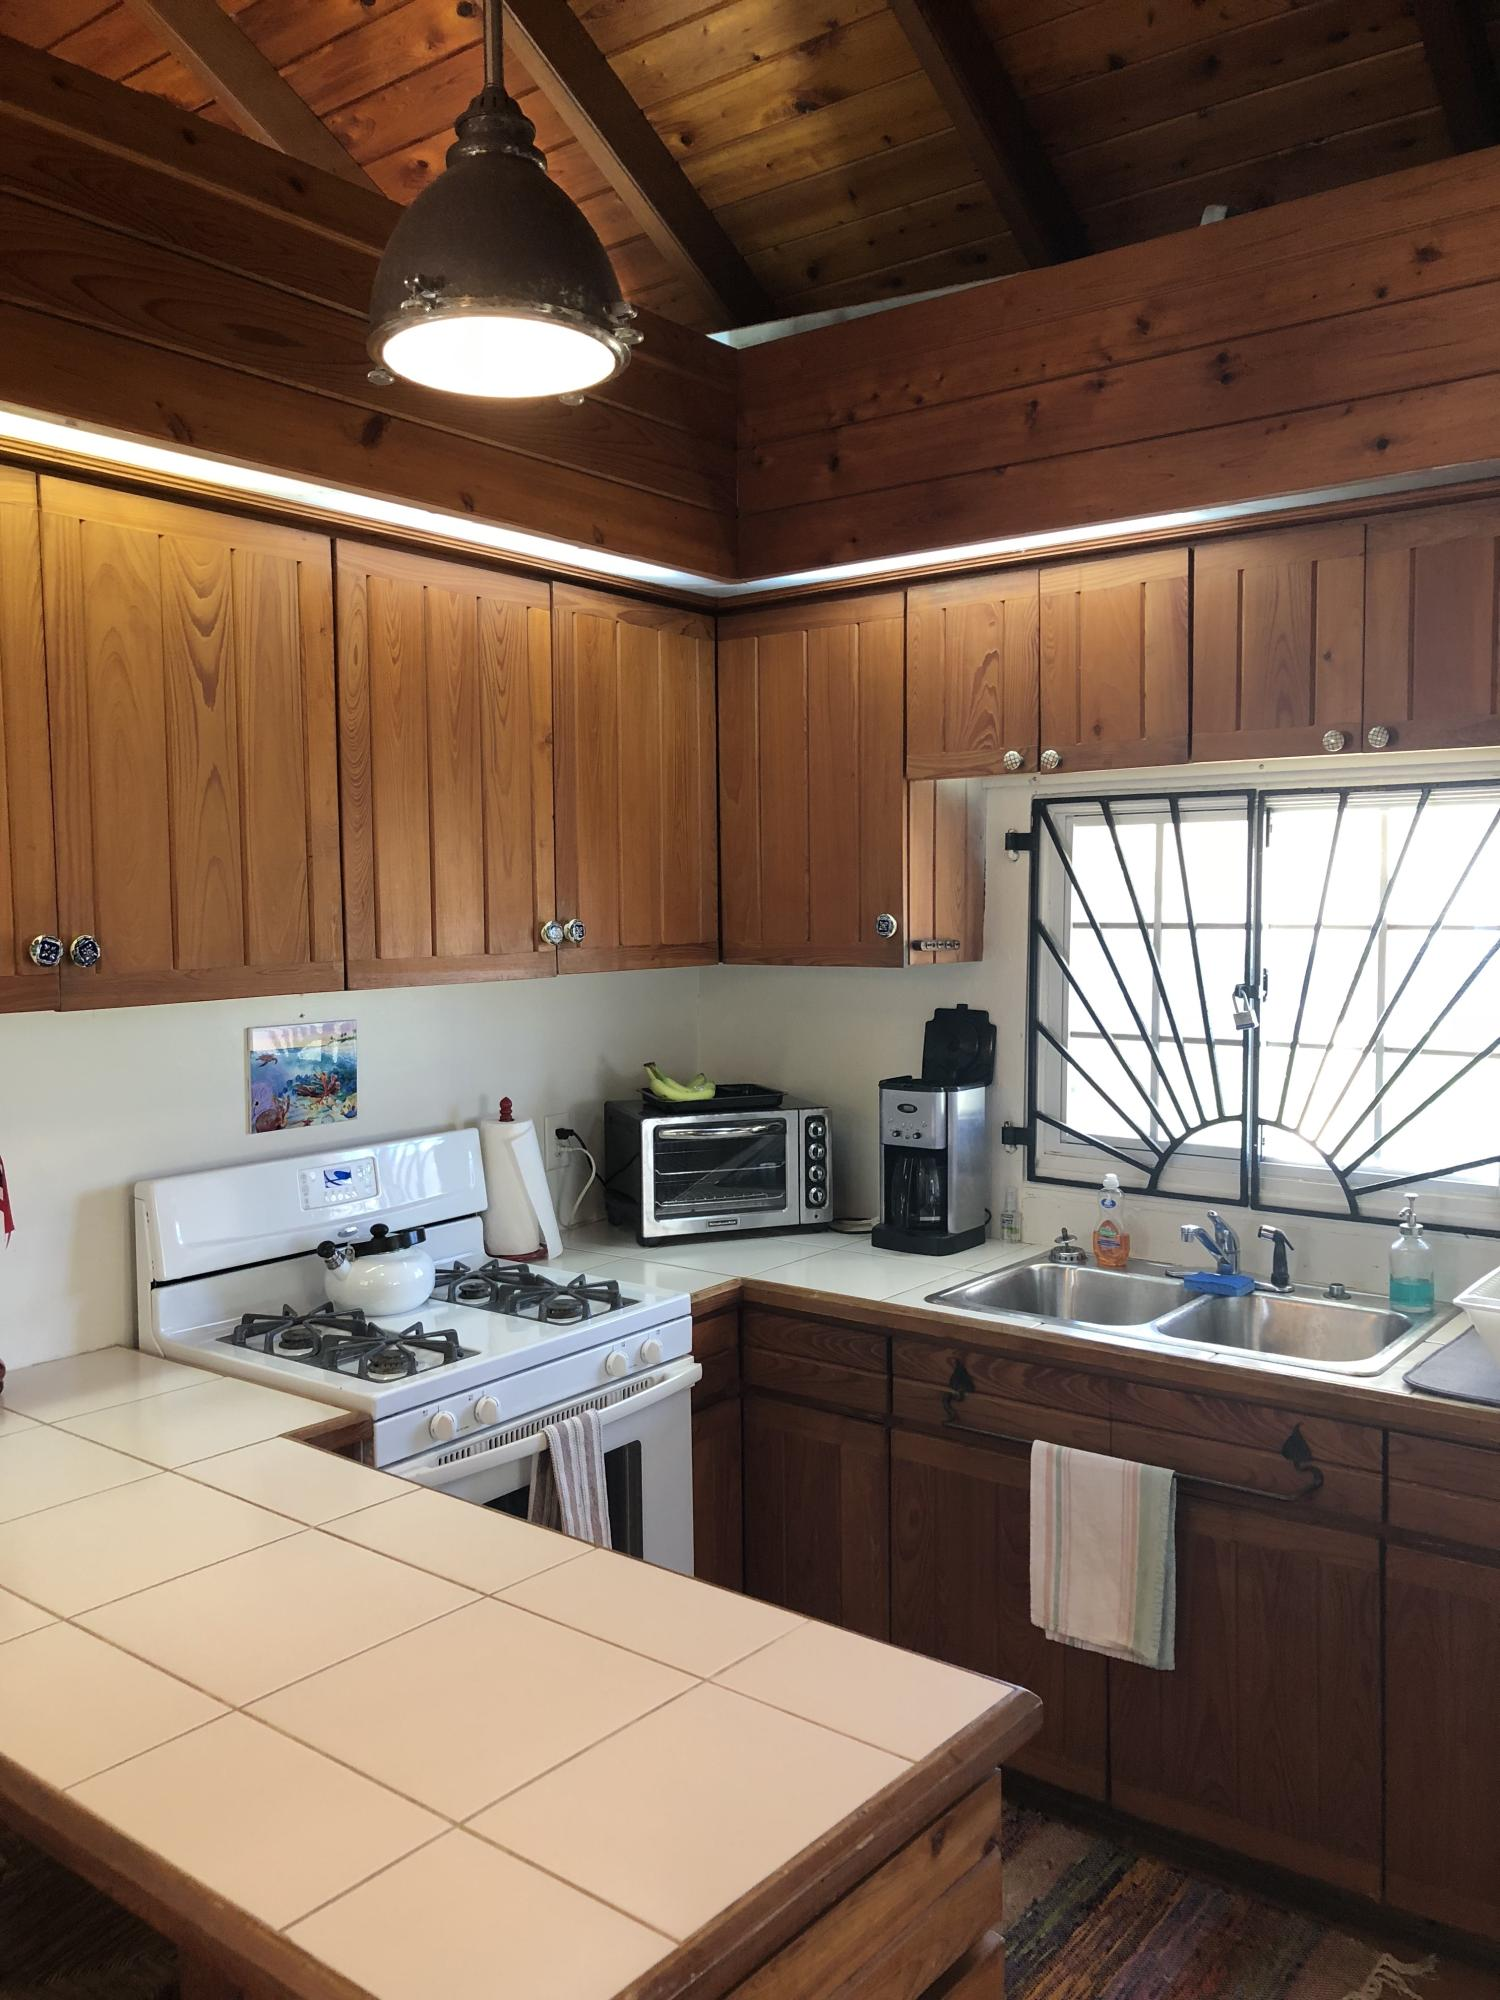 St John, Virgin Islands 00830, 2 Bedrooms Bedrooms, ,1 BathroomBathrooms,Residential,For Sale,19-197